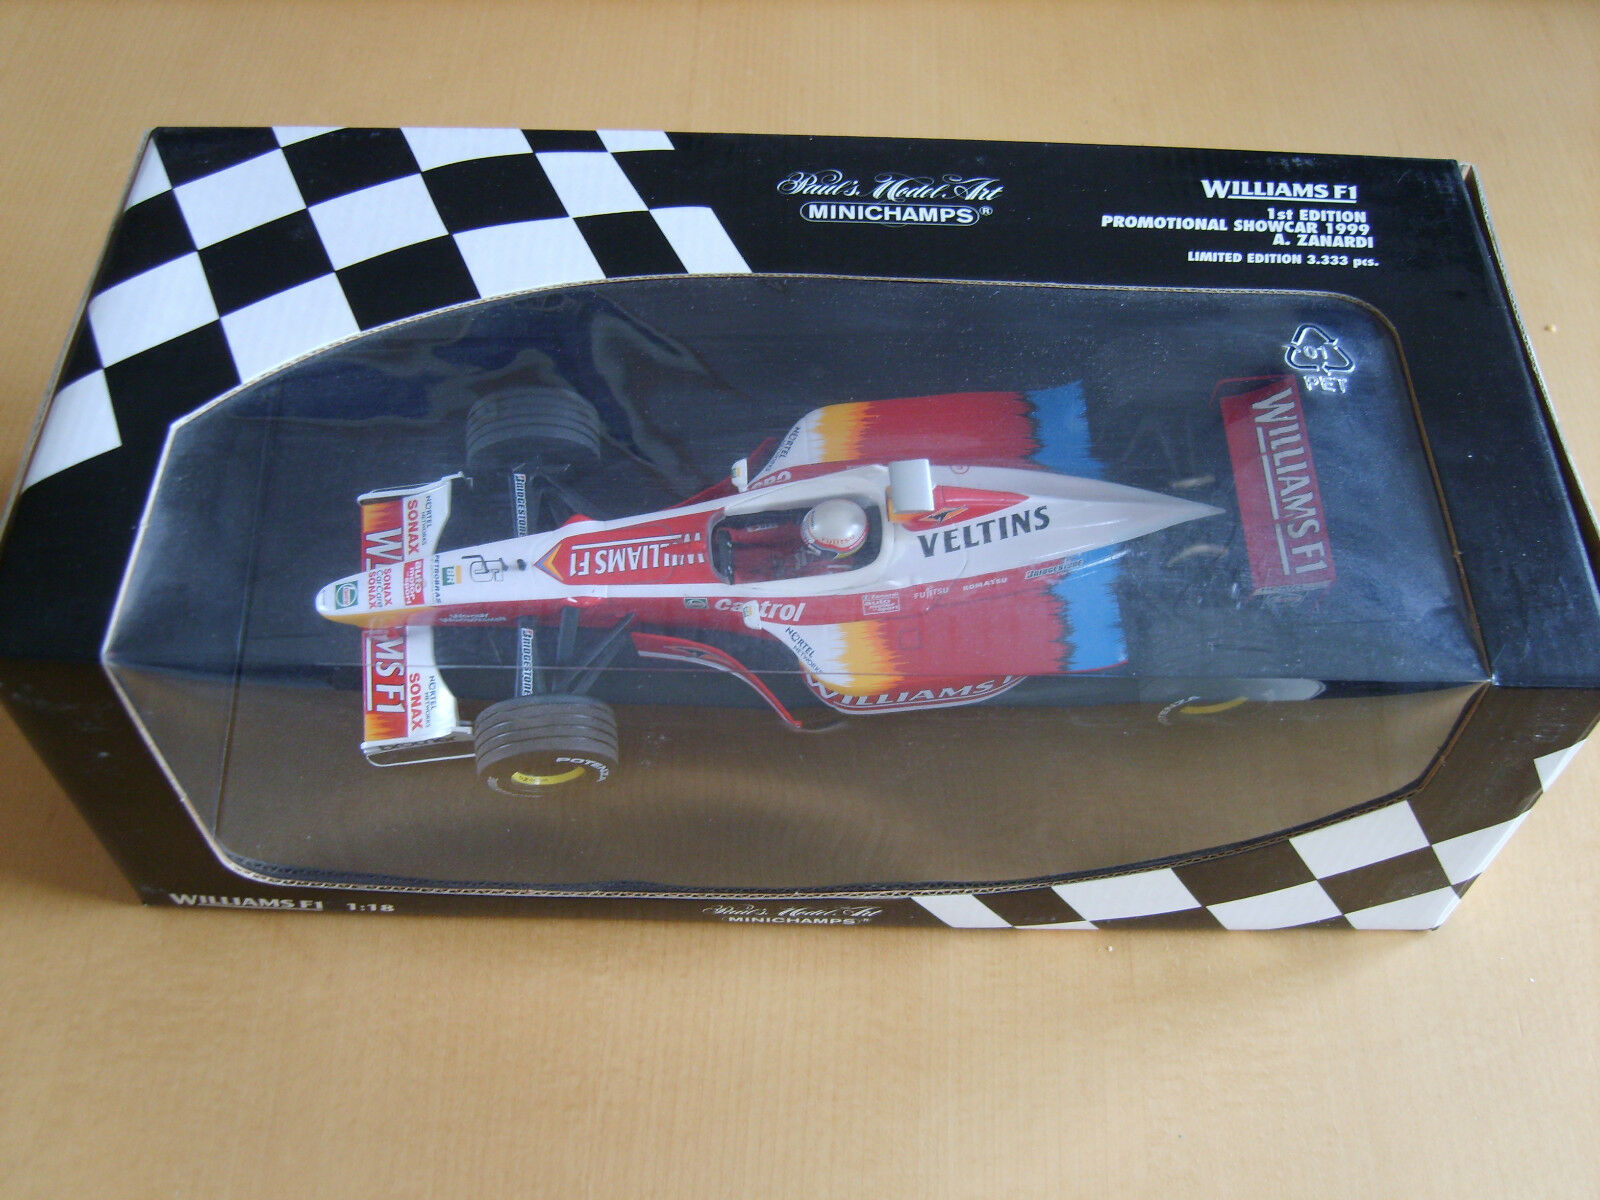 1 18 Minichamps ALEX ZANARDI in Williams PROMOZIONALE Showcar 1999